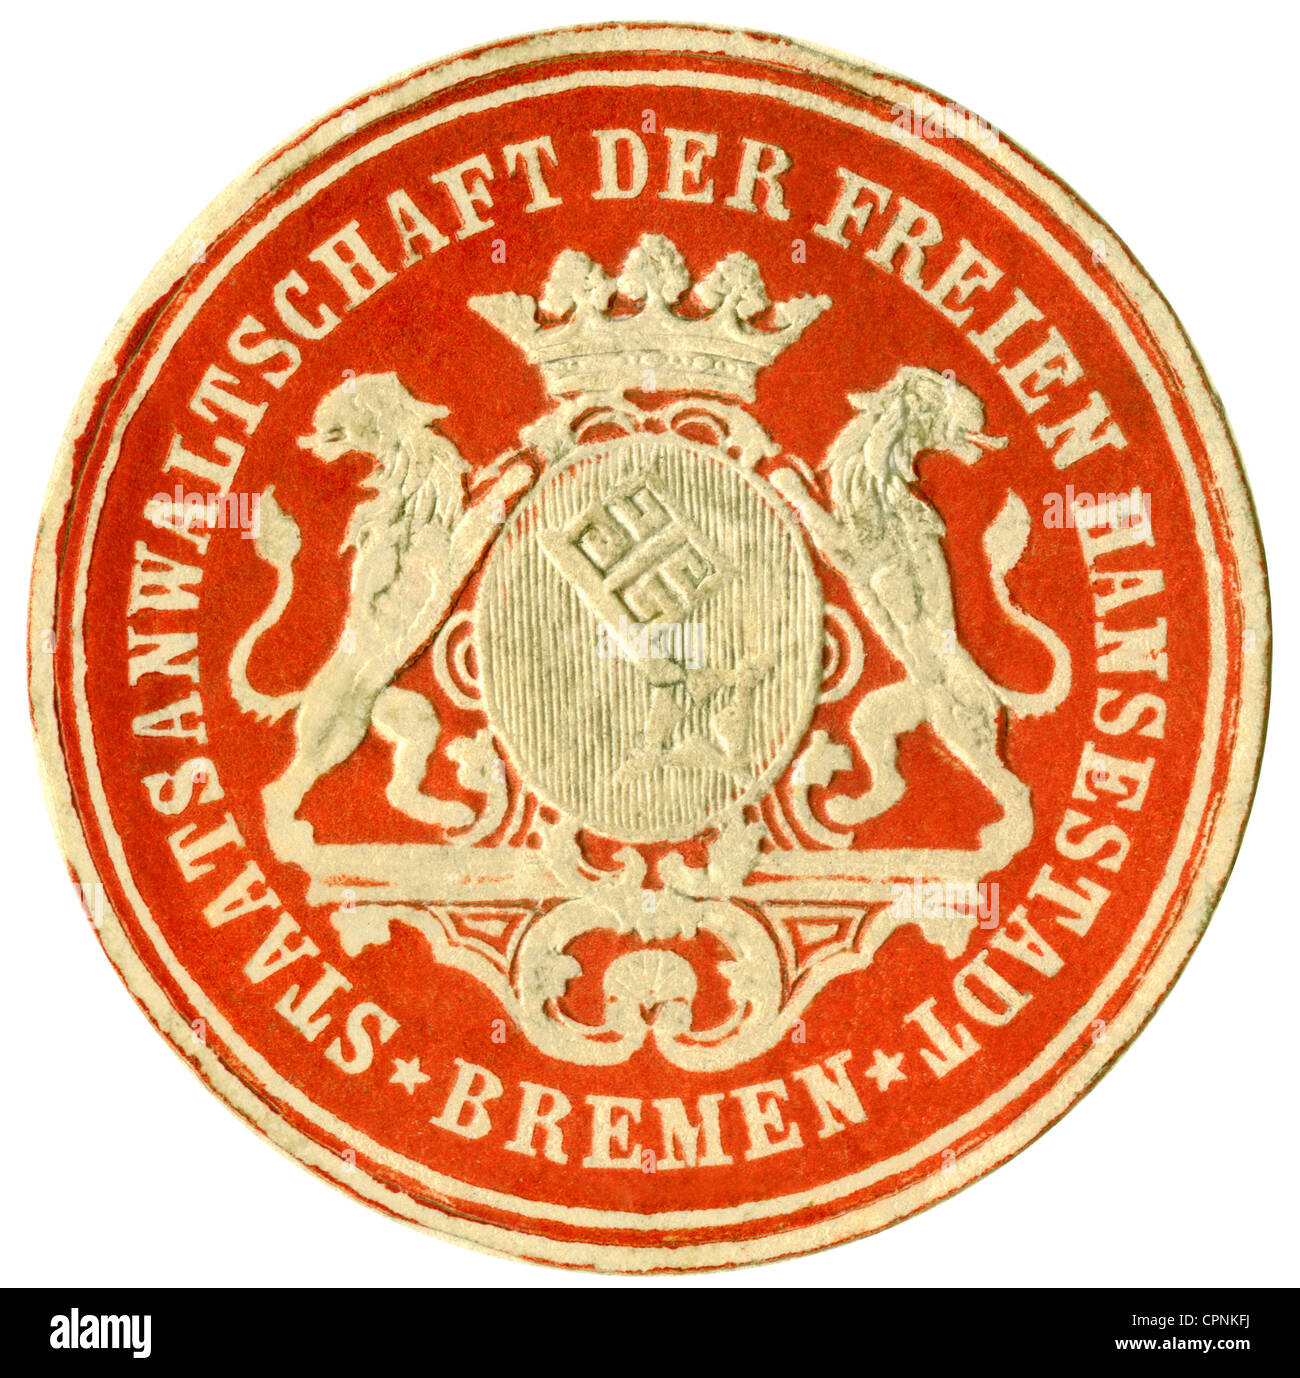 justice, seal, seal, label, prosecution of the Hanseatic town Bremen, Germany, circa 1890, Additional-Rights-Clearences - Stock Image